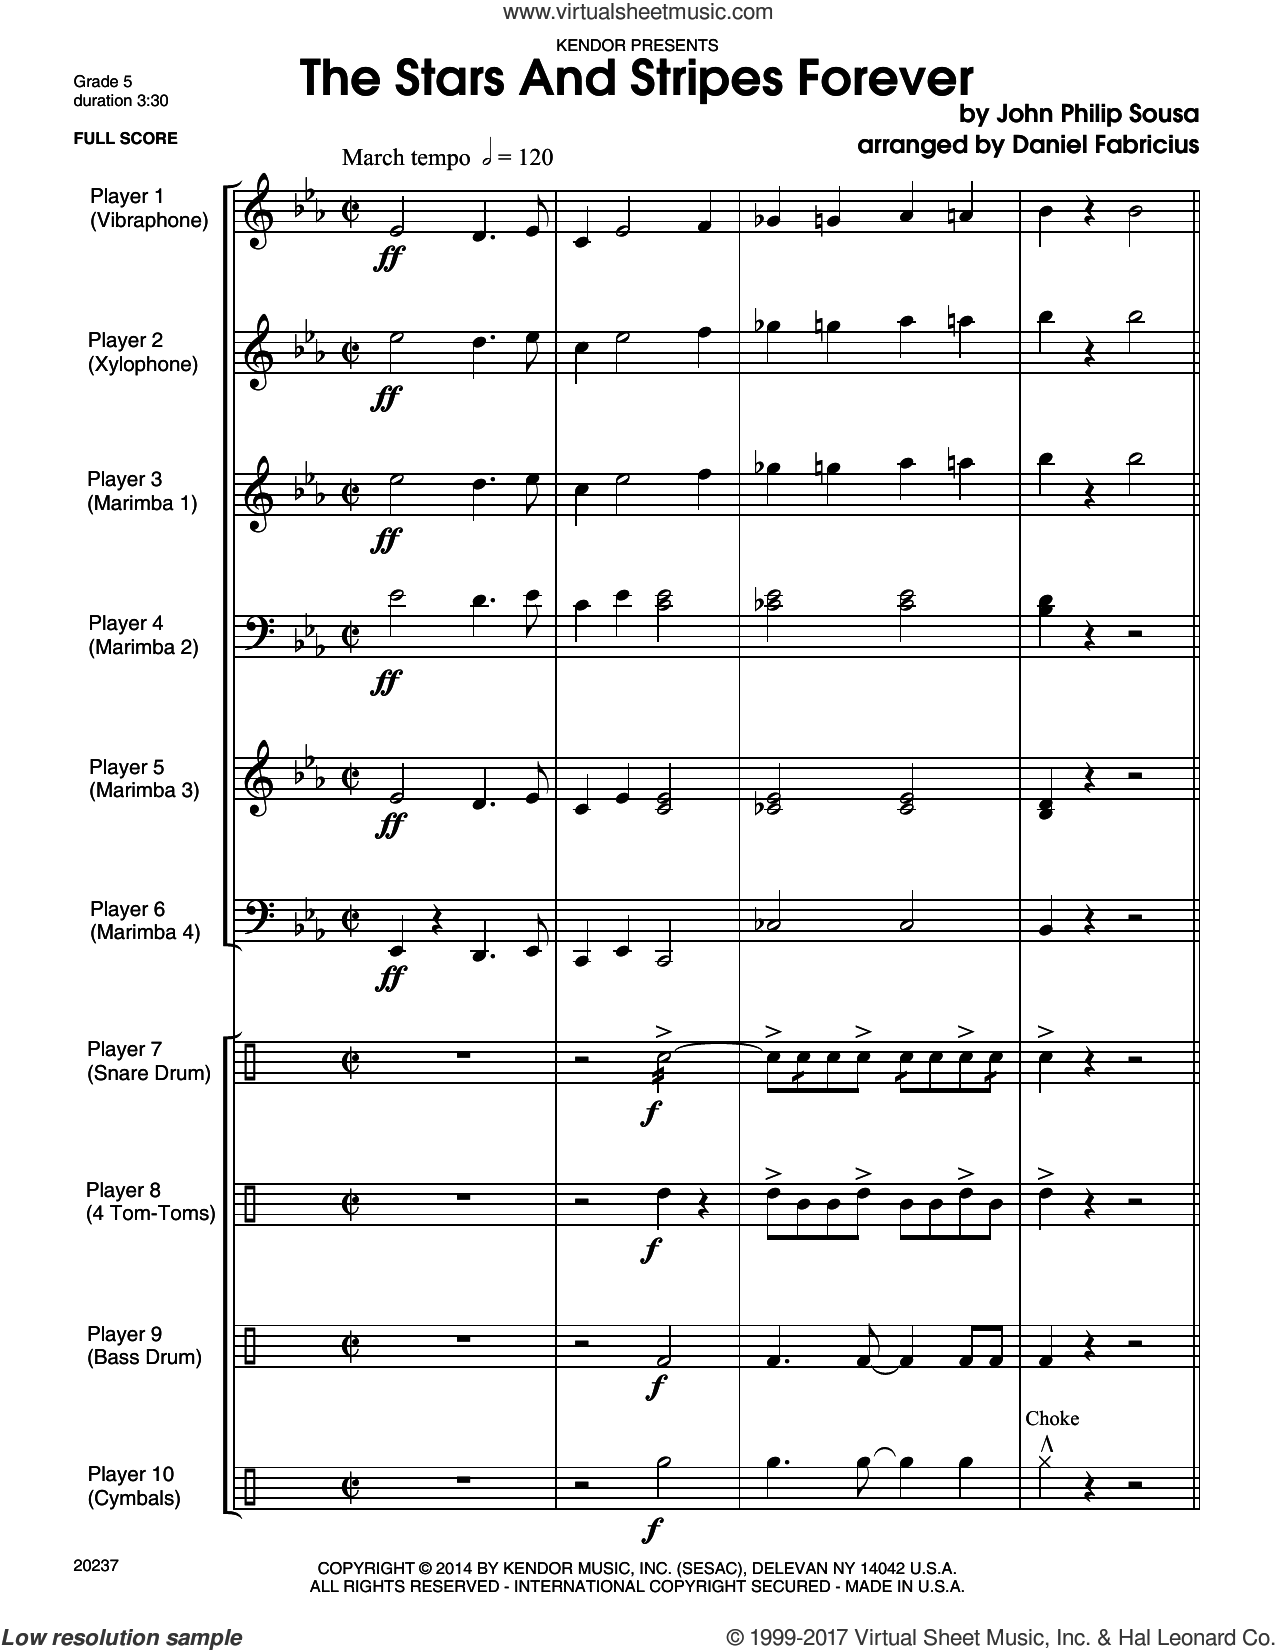 The Stars And Stripes Forever (COMPLETE) sheet music for percussions by John Philip Sousa and Daniel Fabricious, intermediate skill level